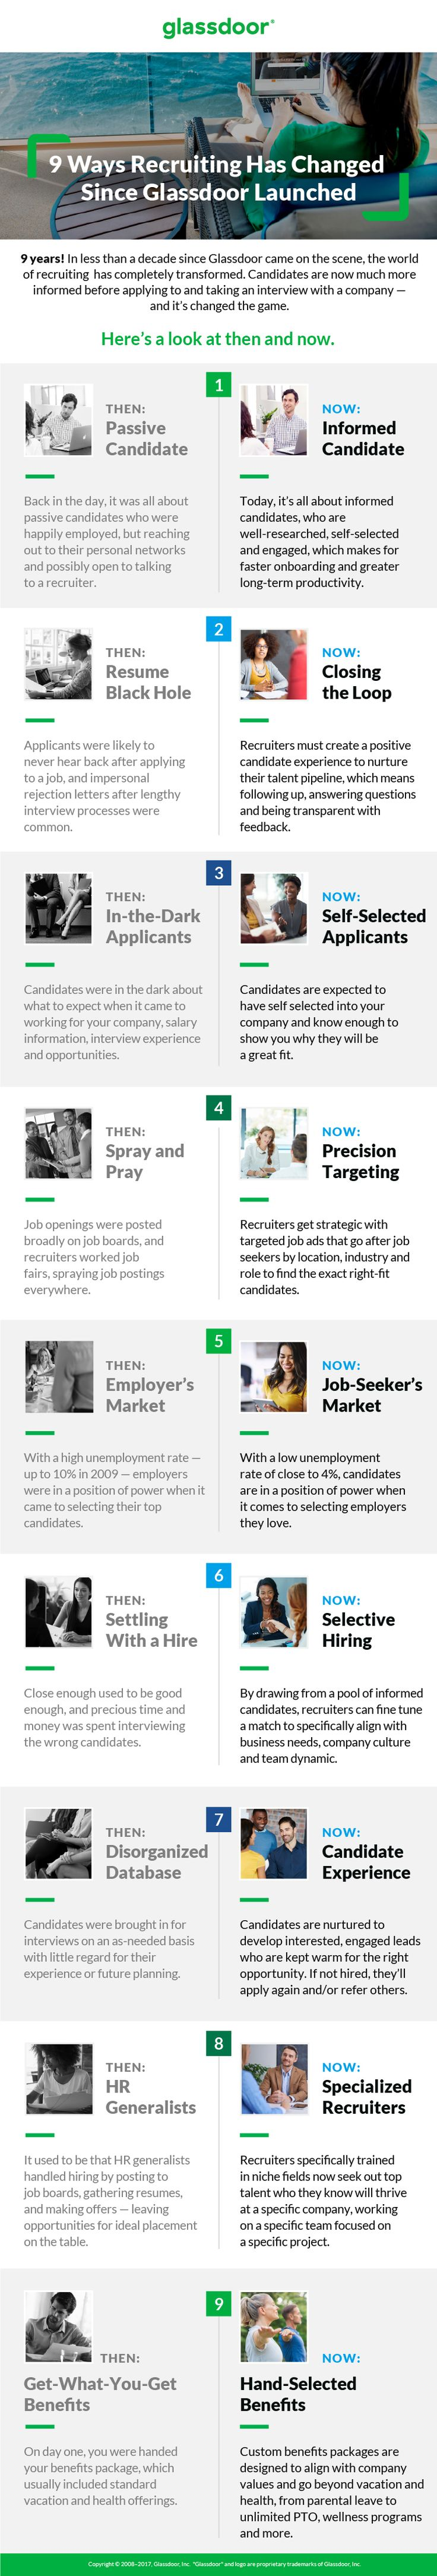 80 best Hiring images on Pinterest | Gadget, Business and Electric power